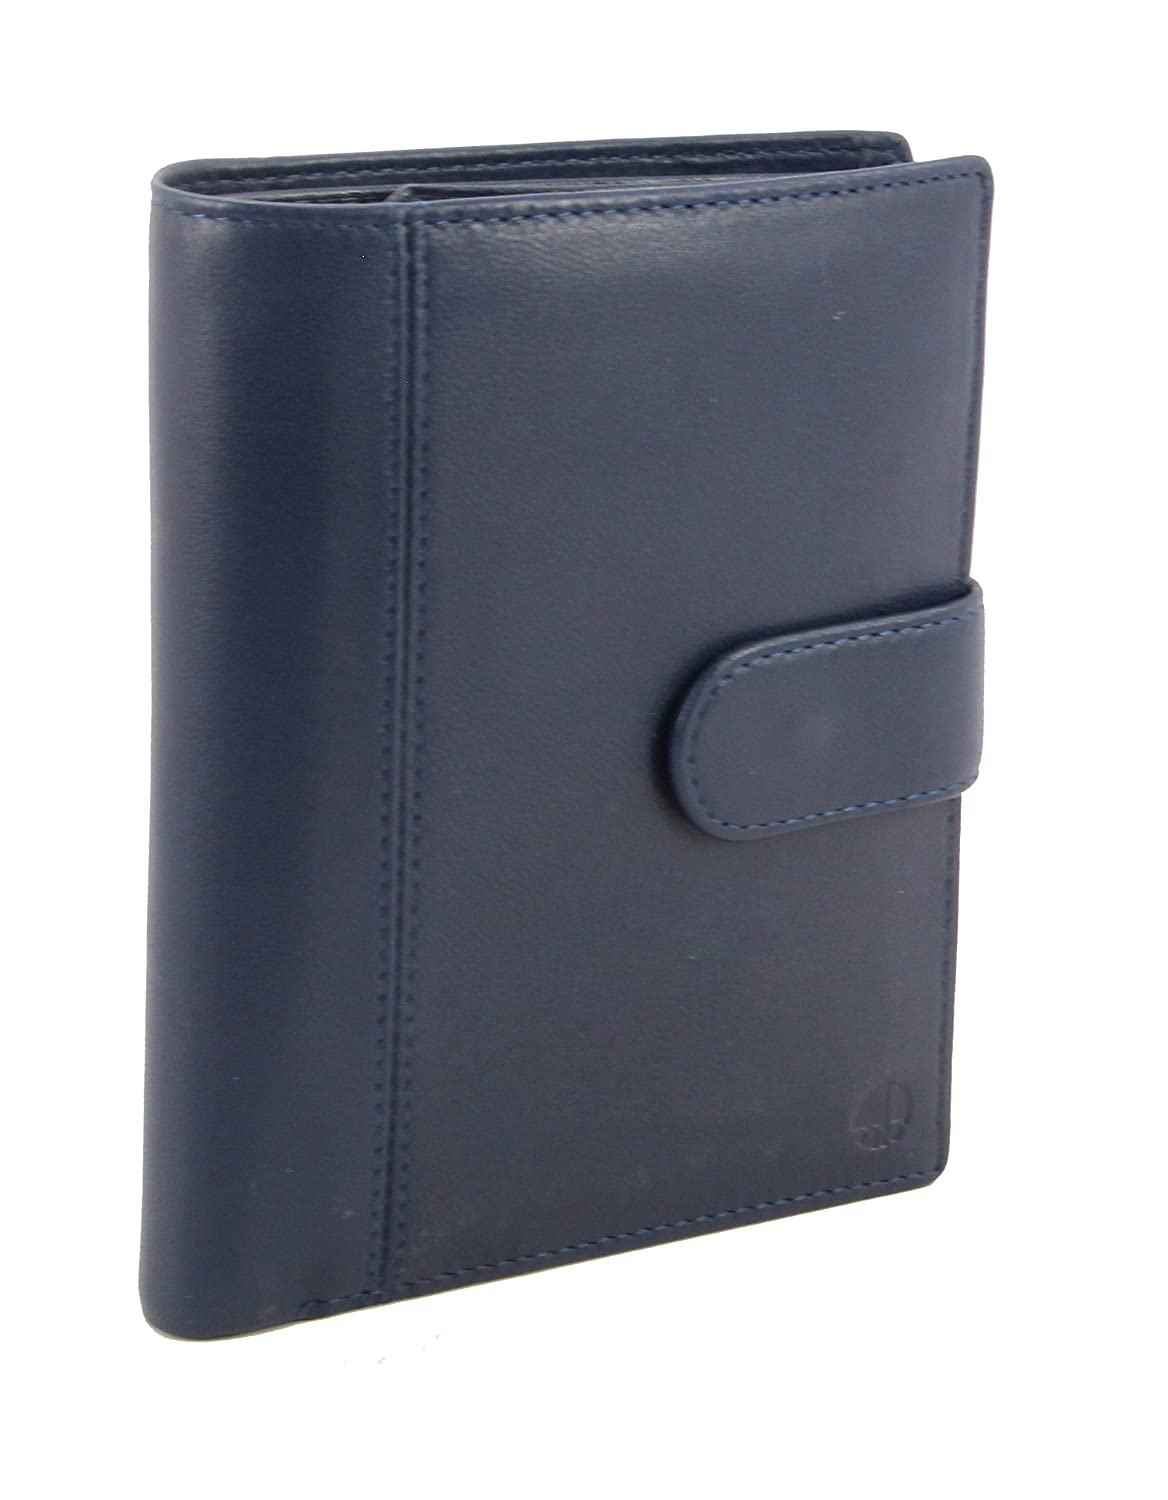 myBitti Genuine Sheep Leather Smart Family Size Passport Travel Wallet/Holder (Noir Black) saba